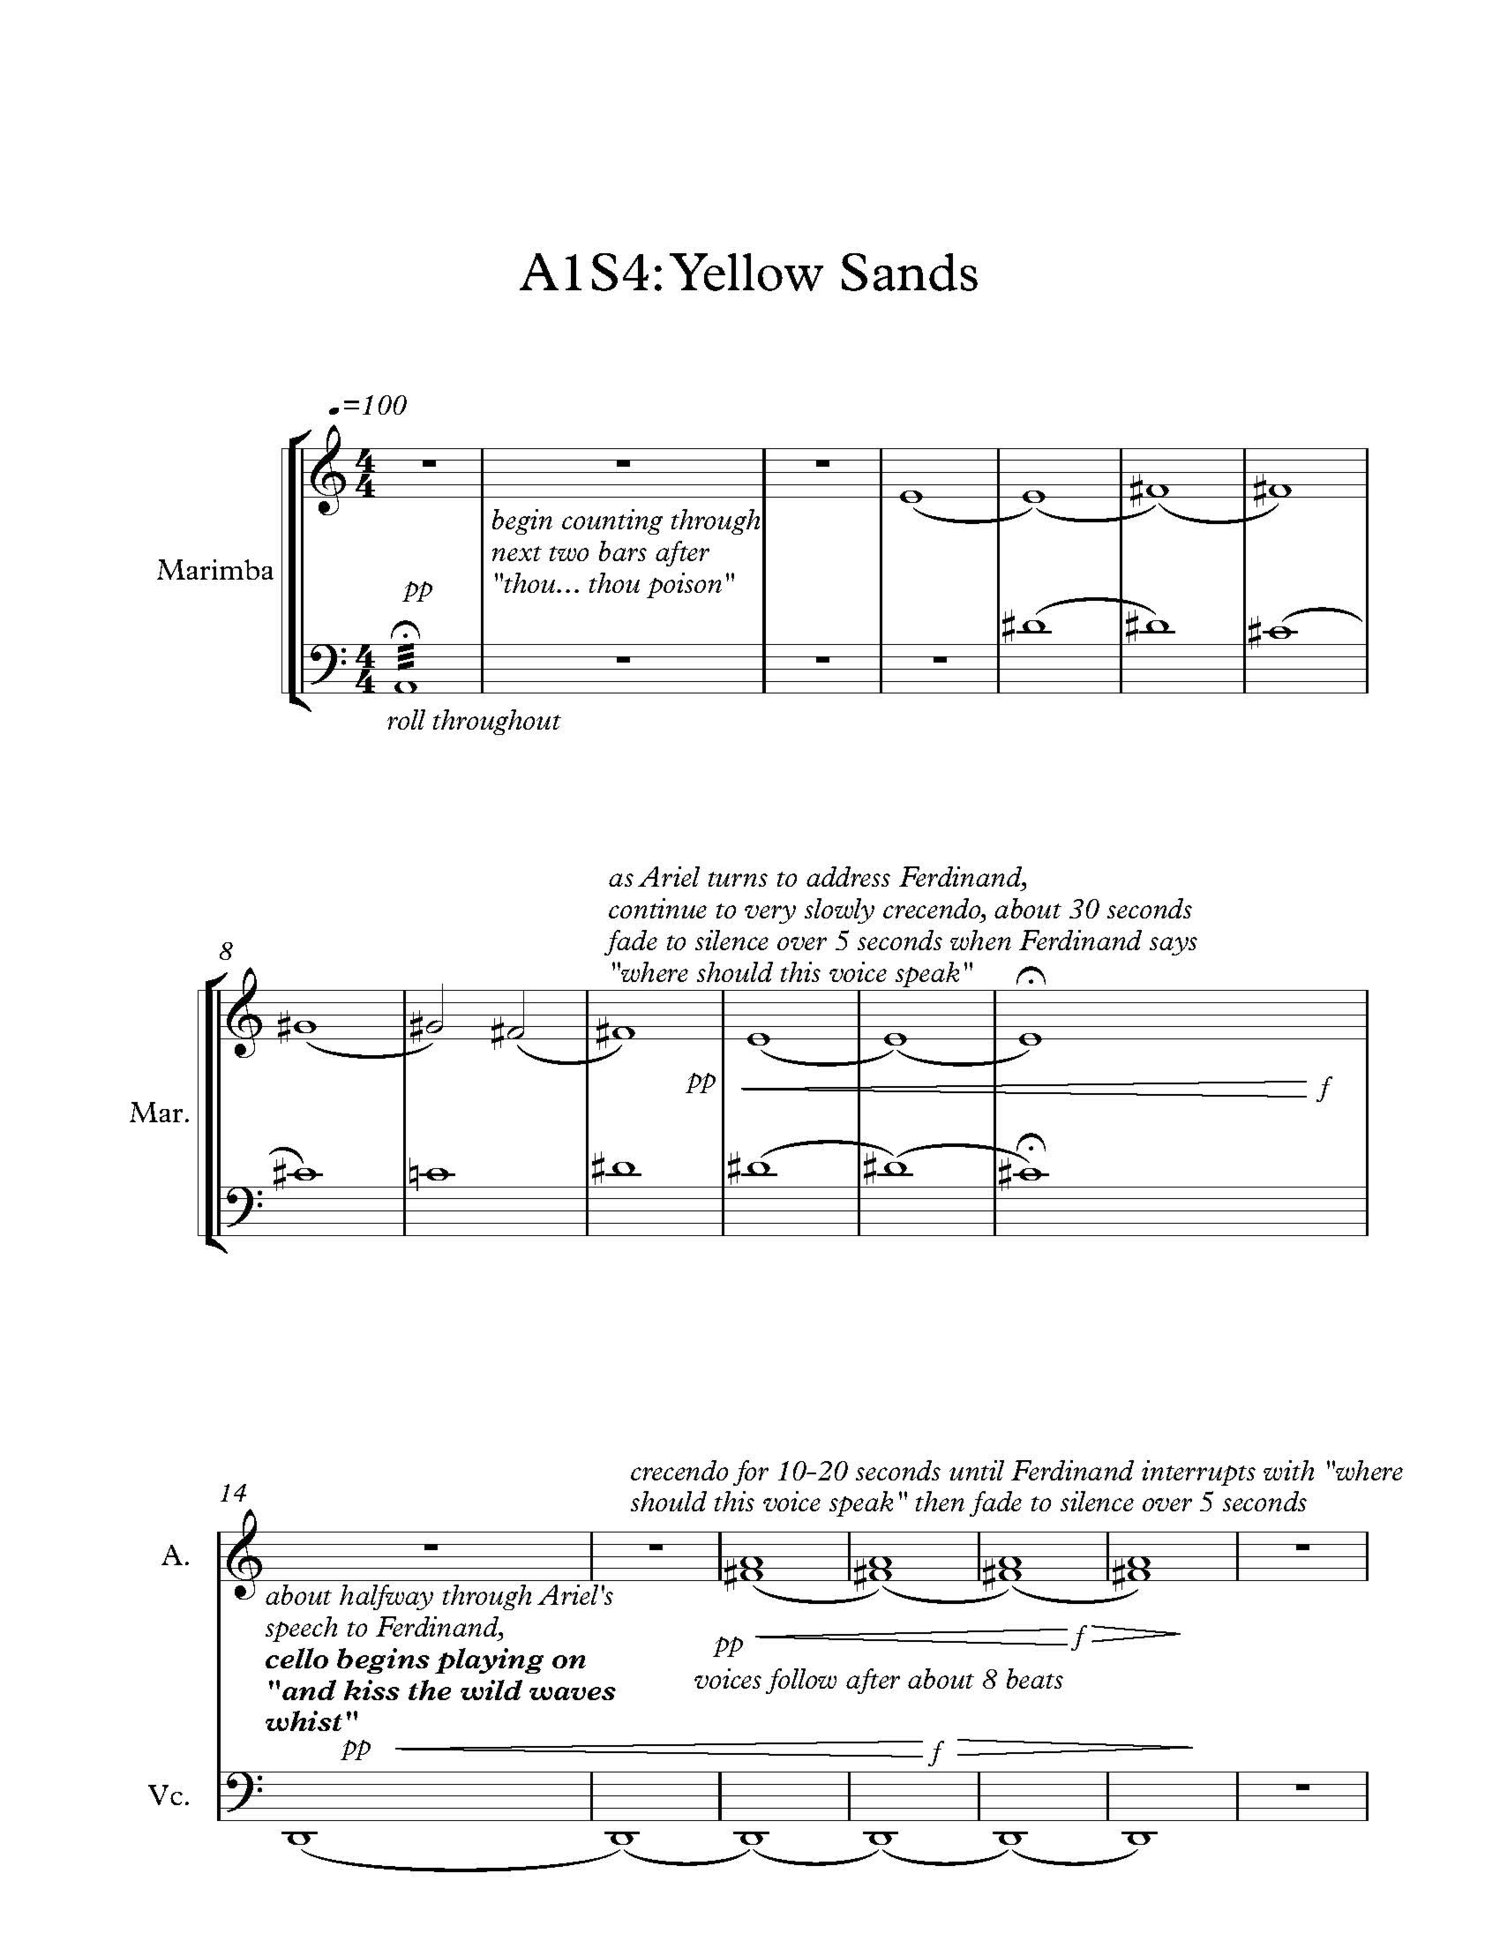 A score that incorporates the flow of the script